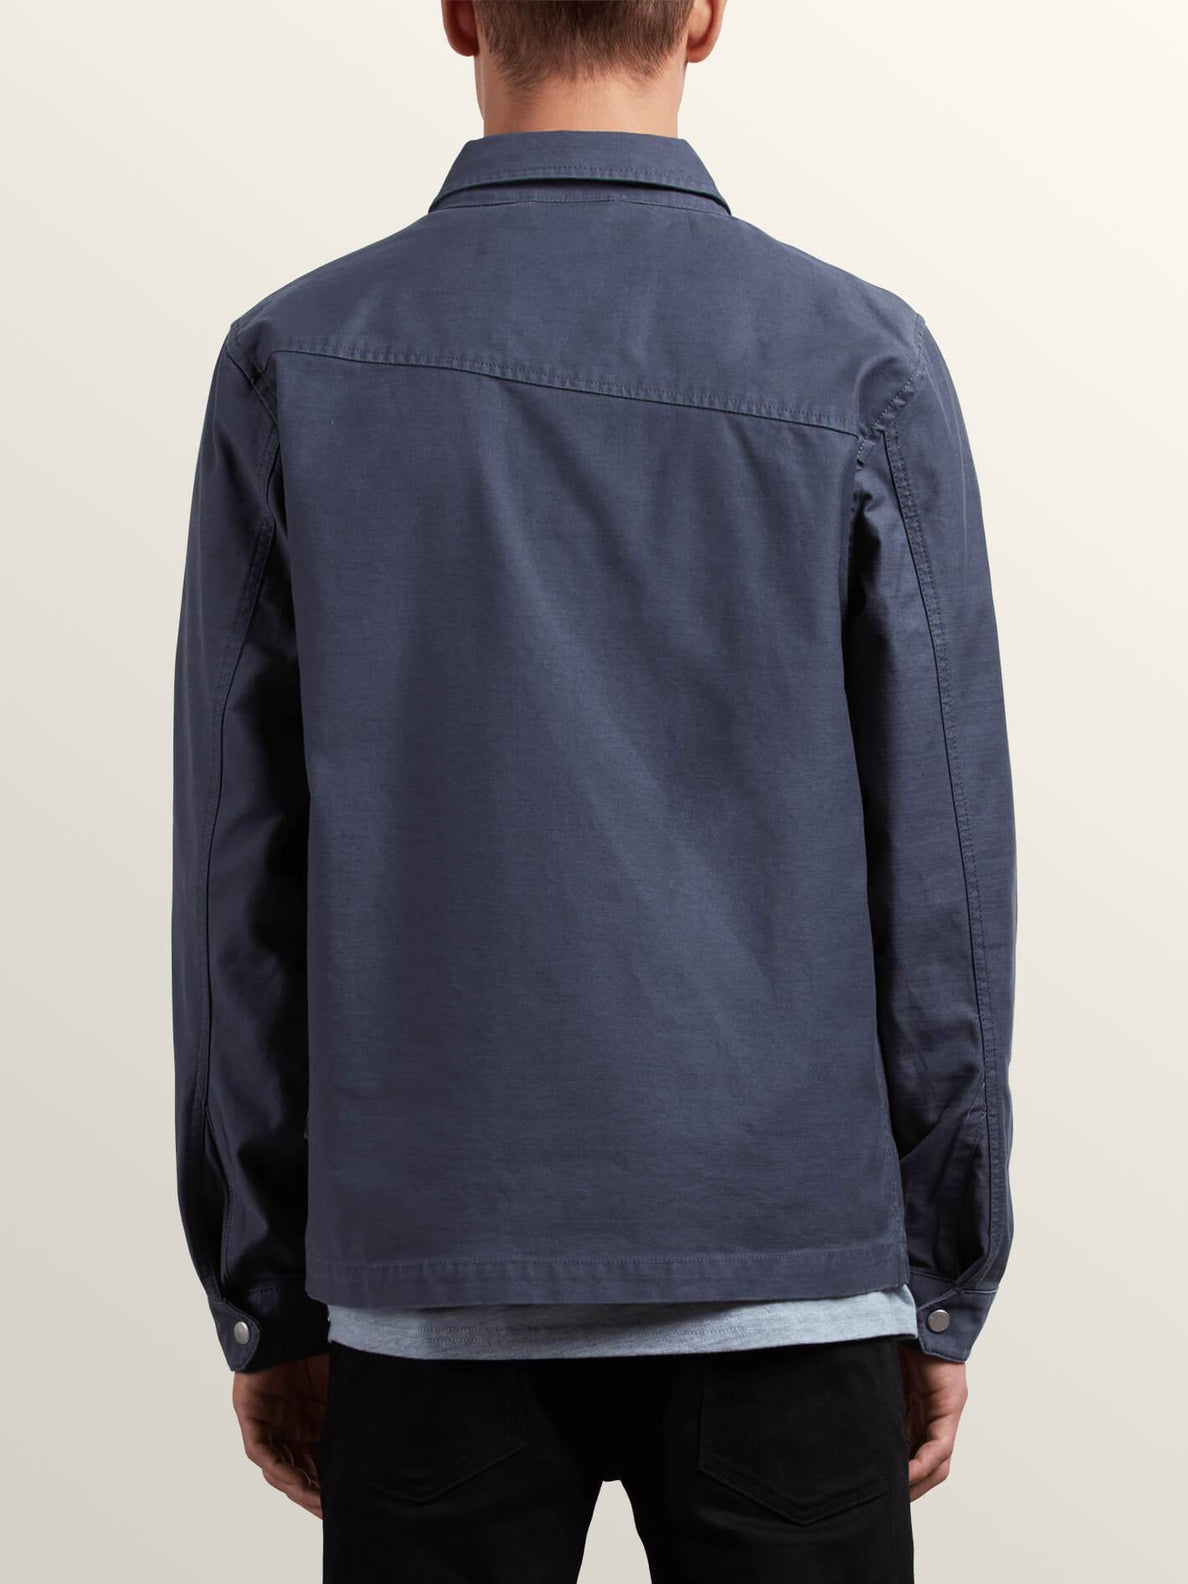 Burkey Jacket In Midnight Blue, Back View